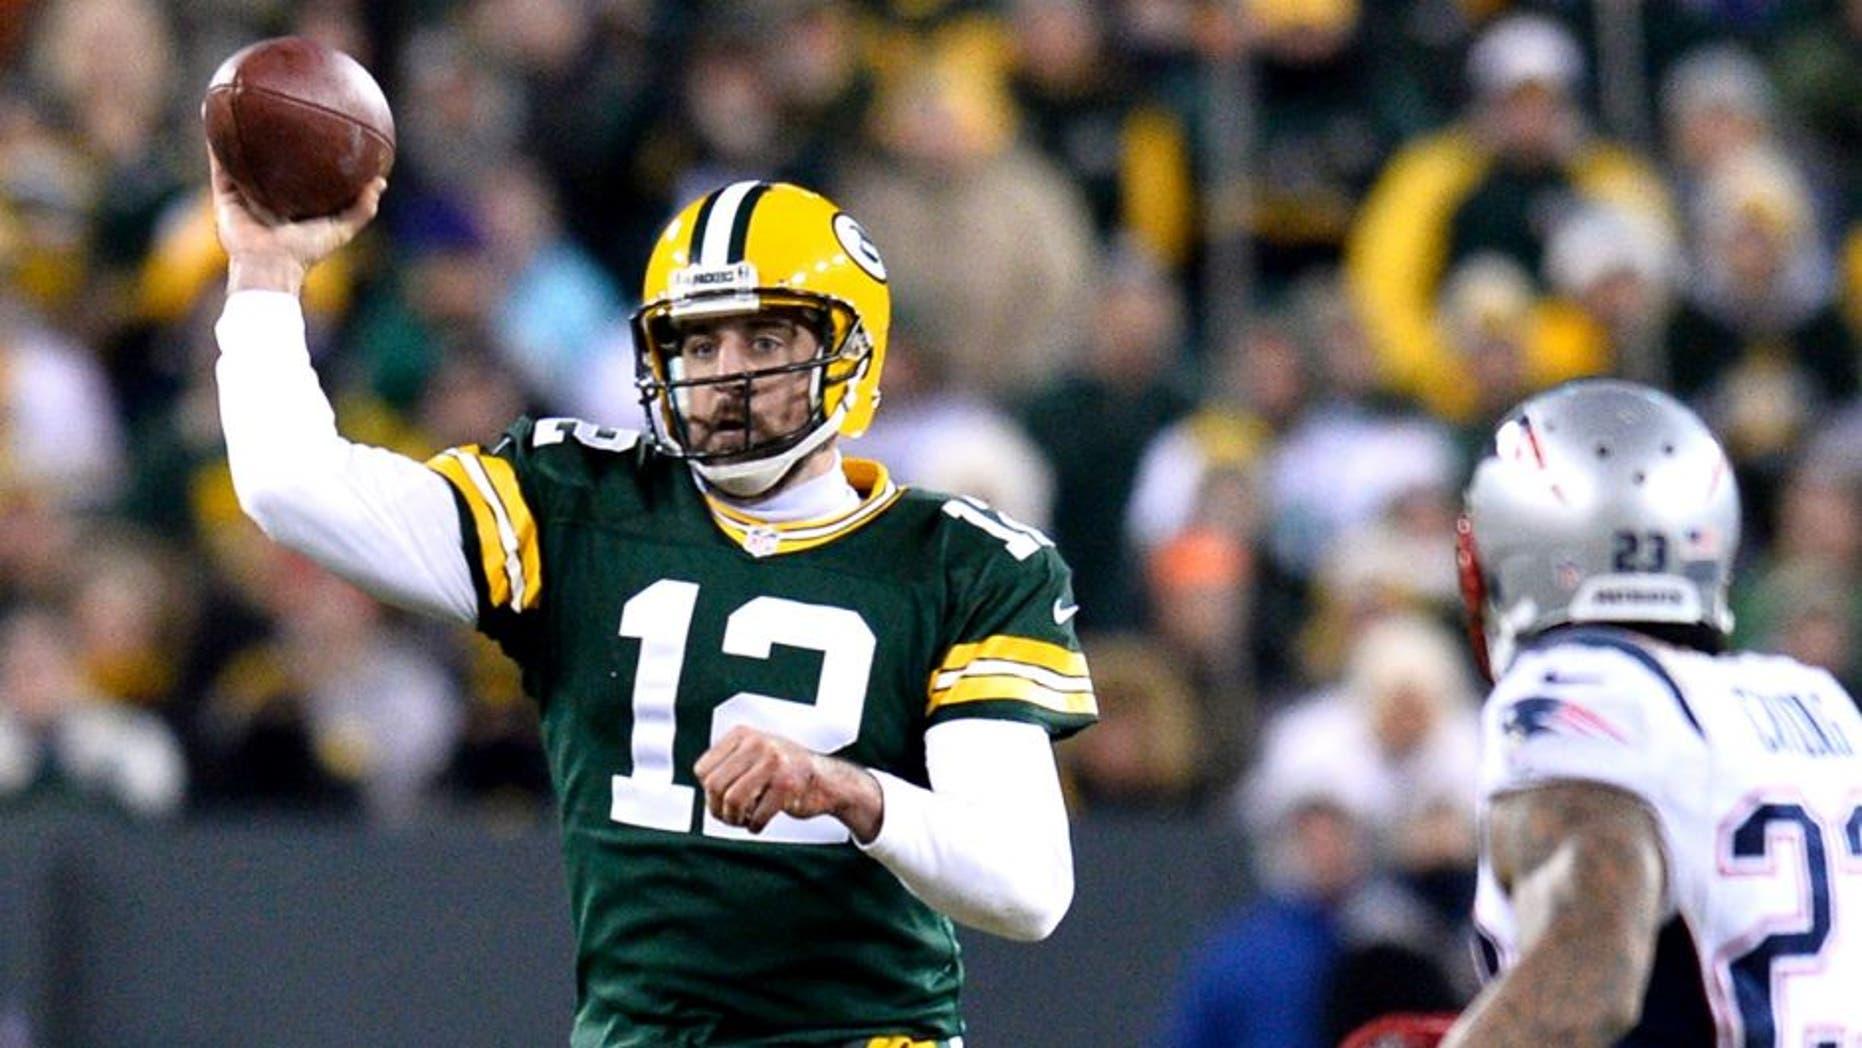 GREEN BAY, WI - NOVEMBER 30: Aaron Rodgers #12 of the Green Bay Packers throws a pass against the New England Patriots during the second quarter at Lambeau Field on November 30, 2014 in Green Bay, Wisconsin. The Packers defeated the Patriots 26-21. (Photo by Brian D. Kersey/Getty Images)